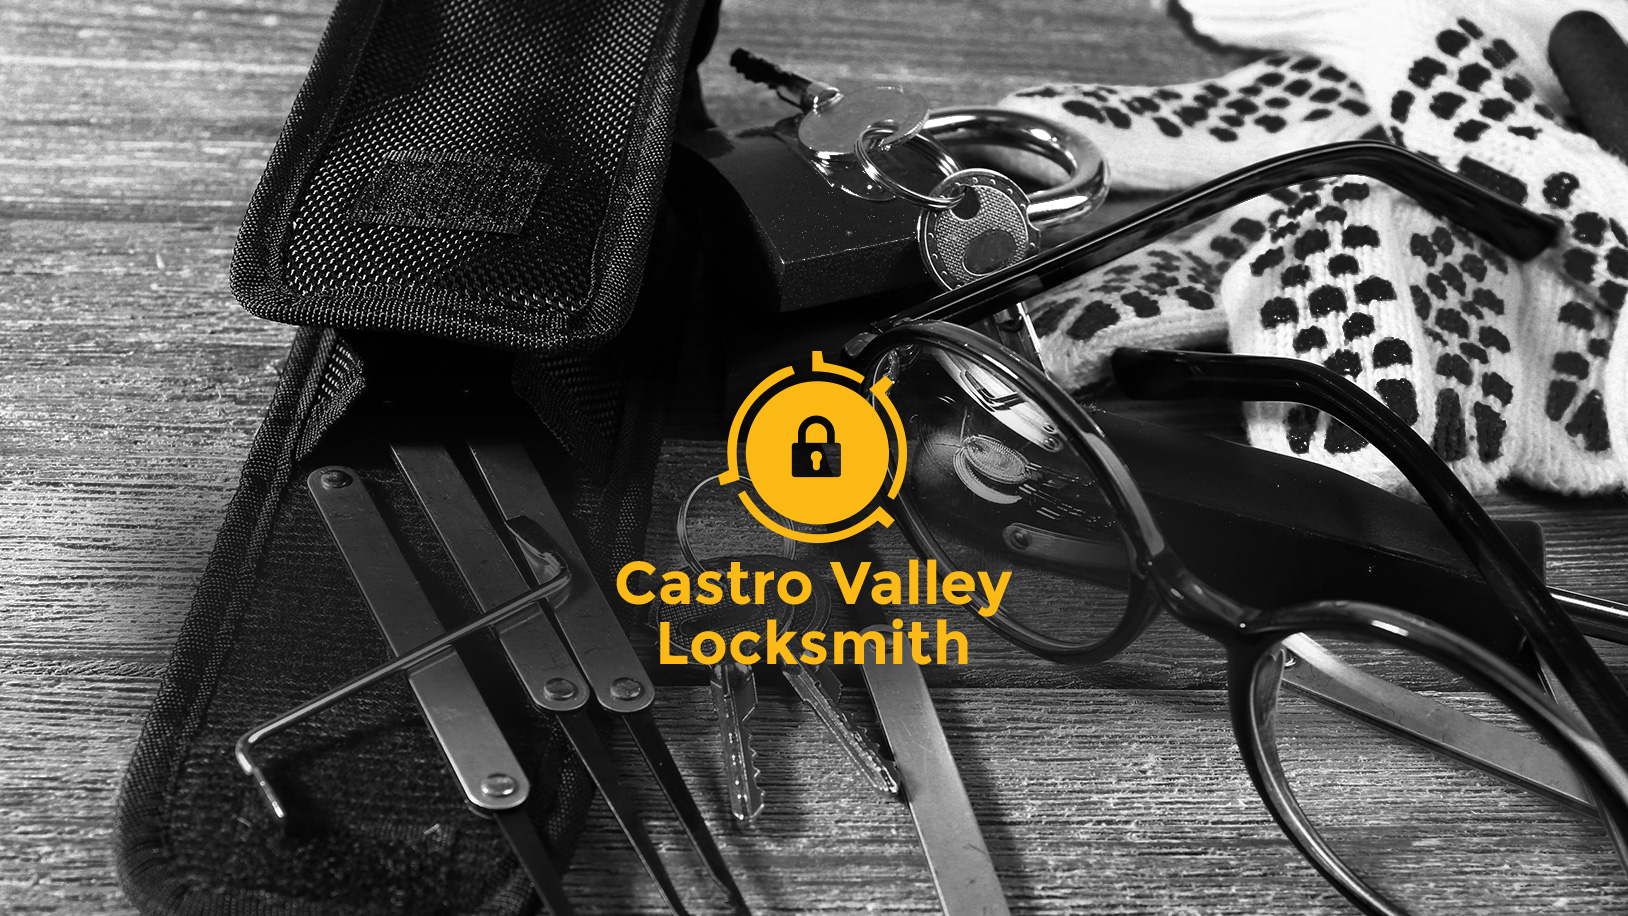 Castro Valley Locksmith